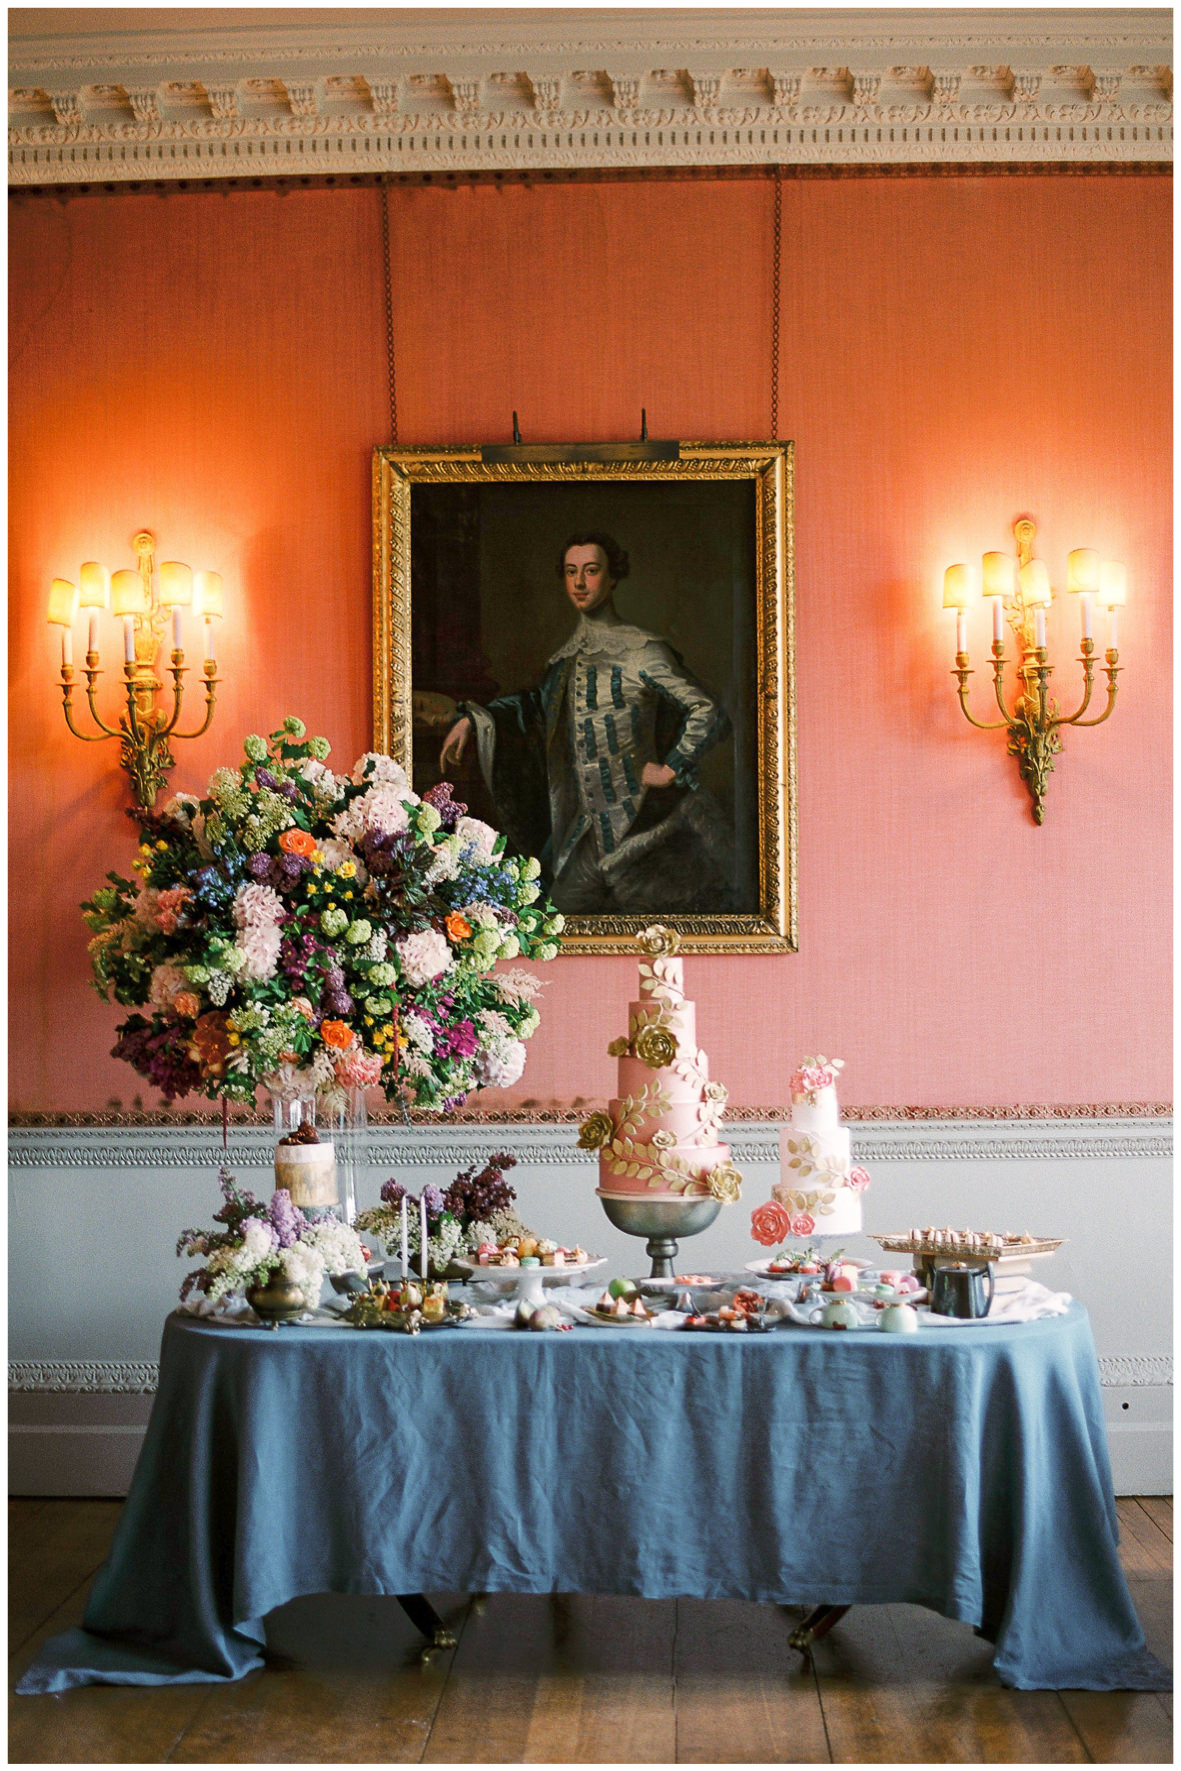 Lucy Davenport Photography, Holdenby House, wedding venue, Northamptonshire, dessert station, Princess Patisserie, wedding cake, Indulgence Boutique Catering, florals, Ronny Colbie